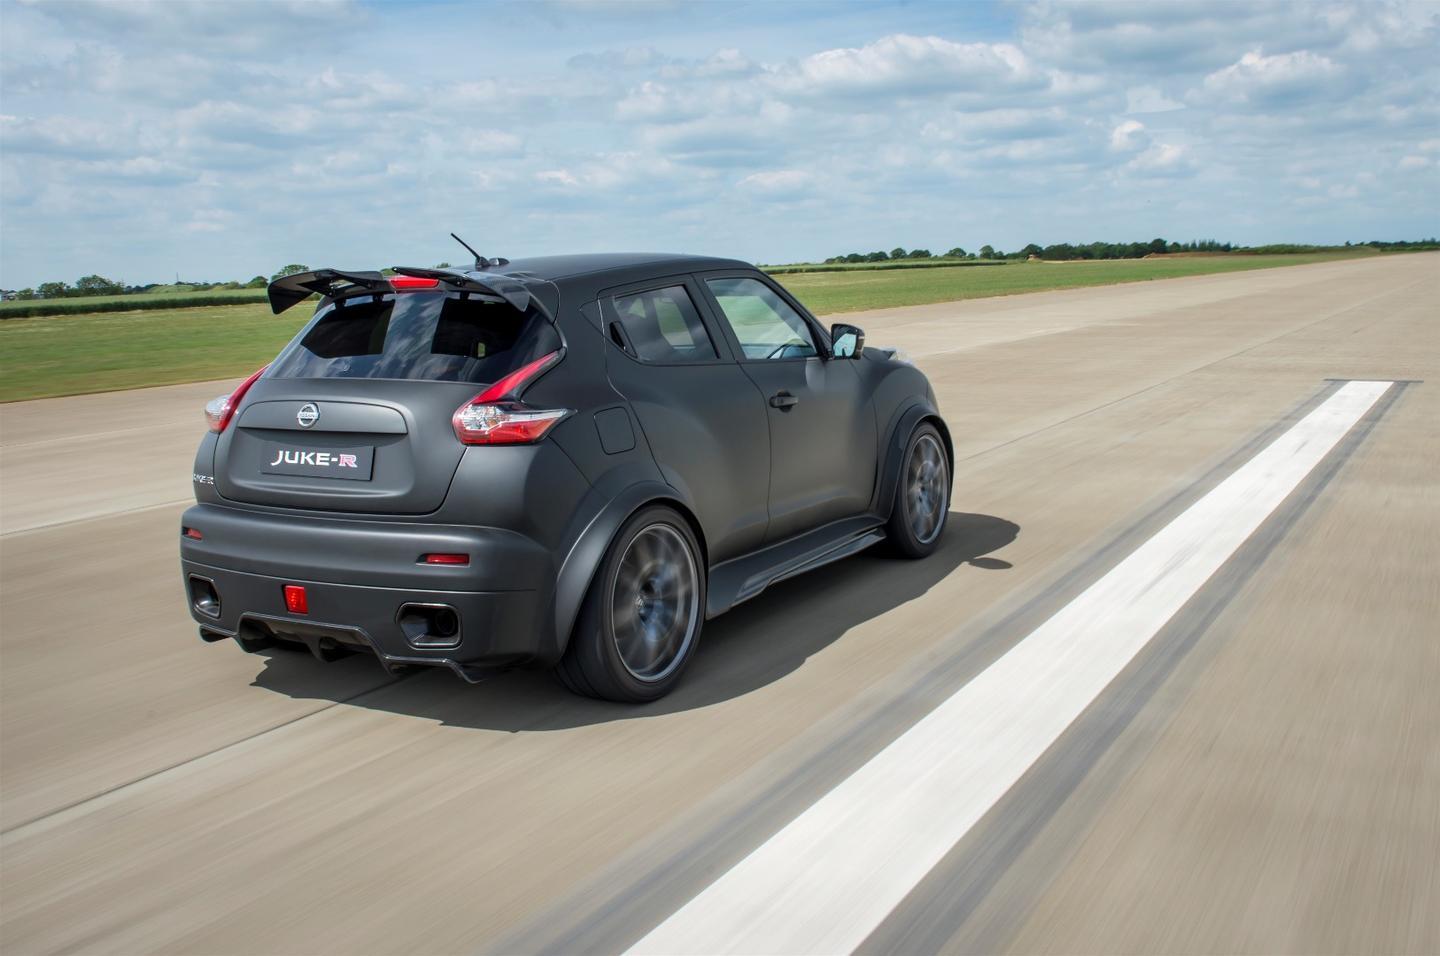 The new Juke-R gets an engine upgrade from the GT-R Nismo, a revised body from the 2015 Juke, and some upgrades all its own